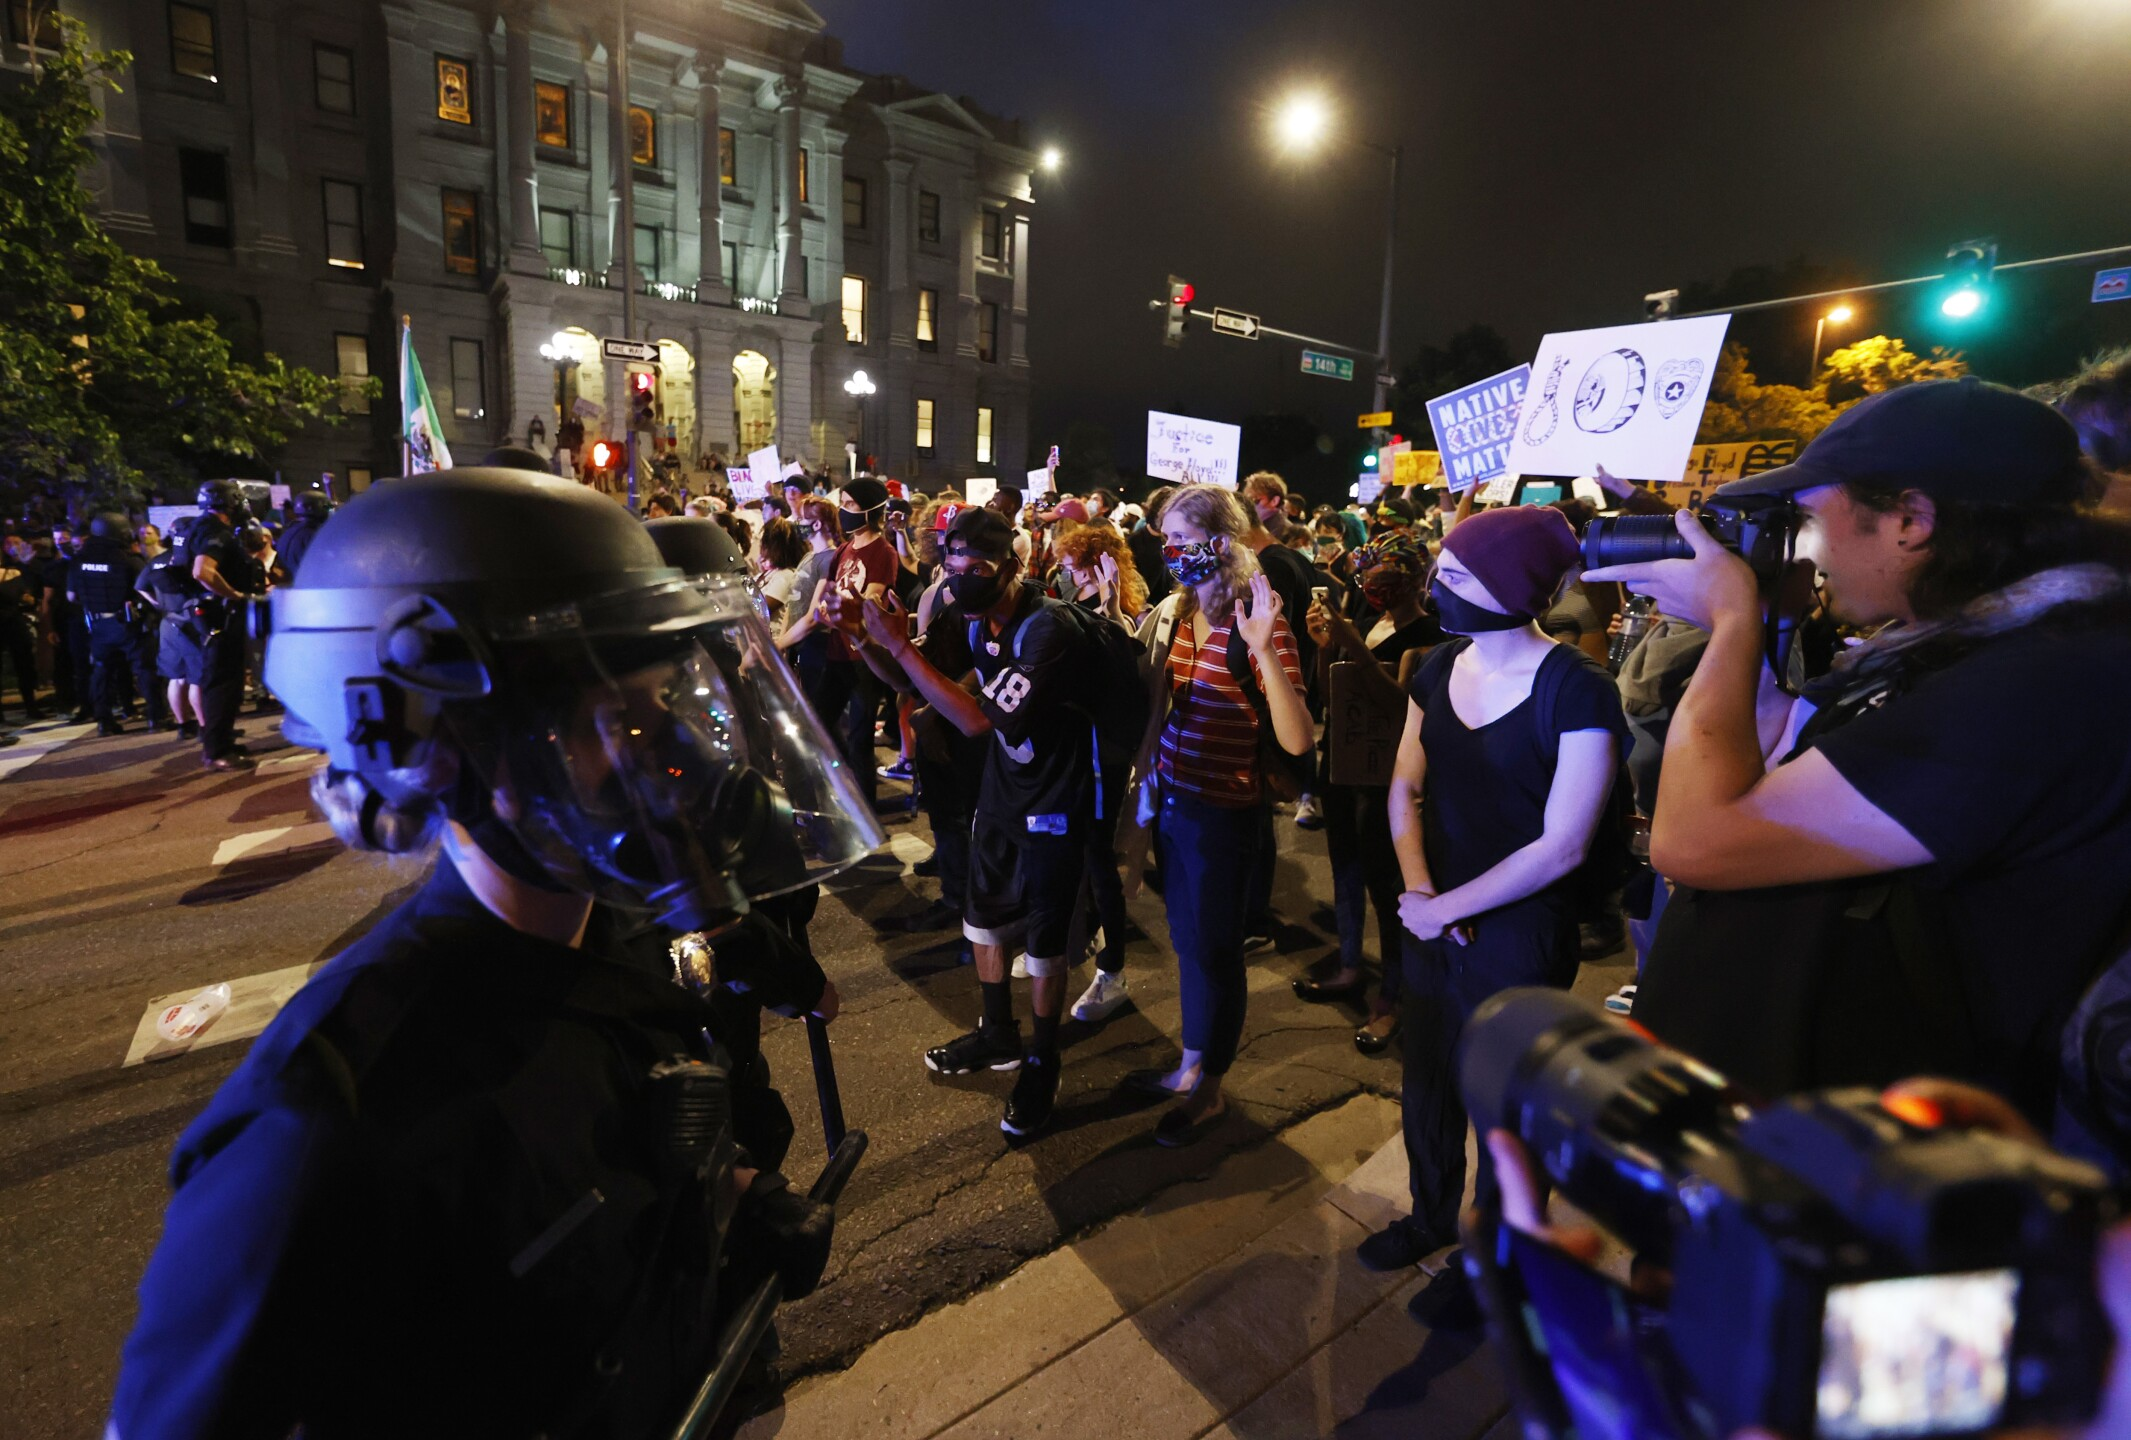 Images from Denver's George Floyd protests Thursday night